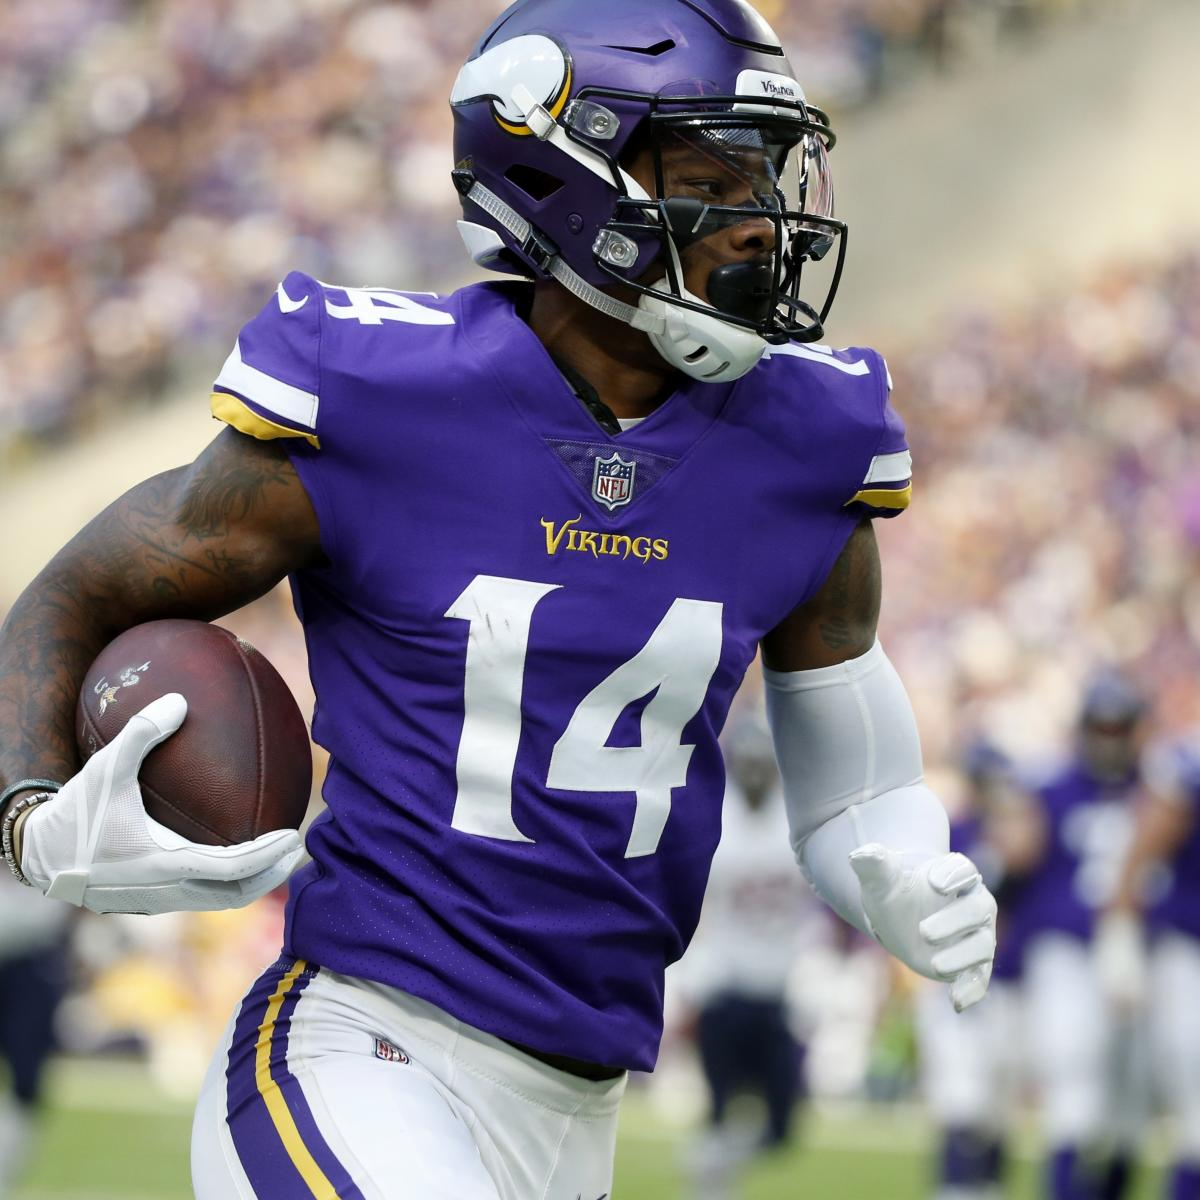 NFL Rumors: Vikings 'Hoping' to Sign Stefon Diggs, Anthony Barr to New Contracts